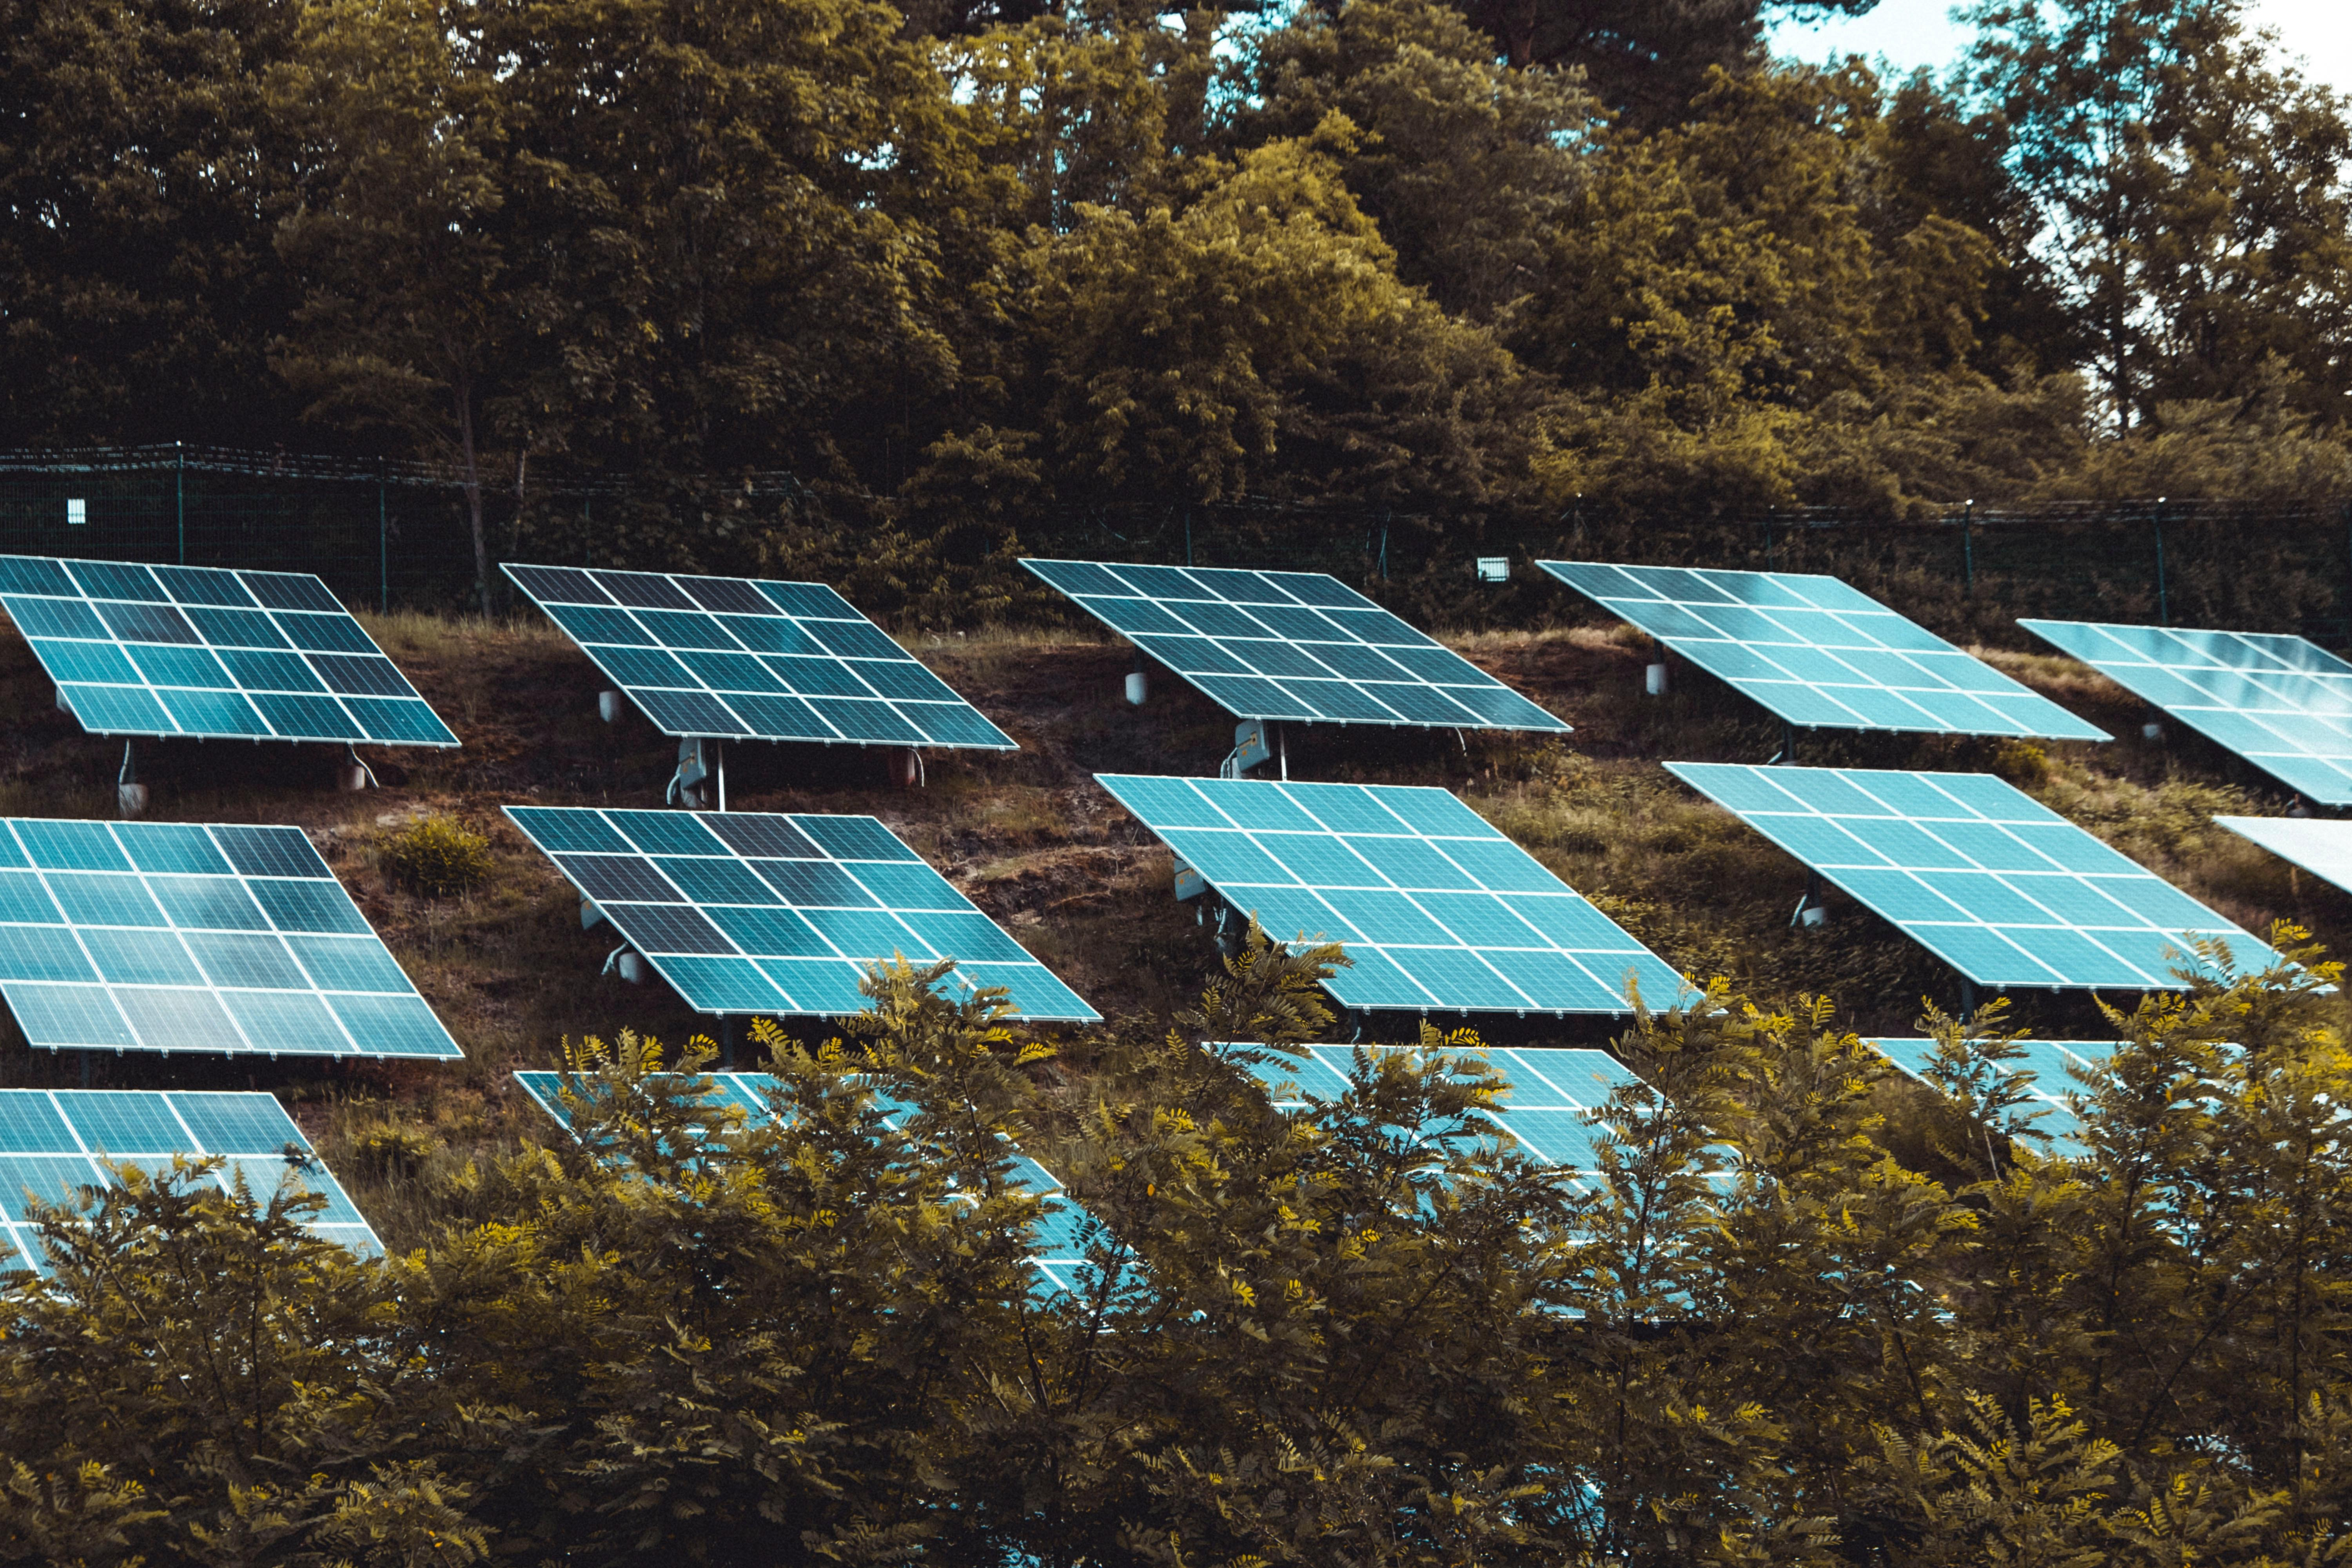 Solarpanels in the woods